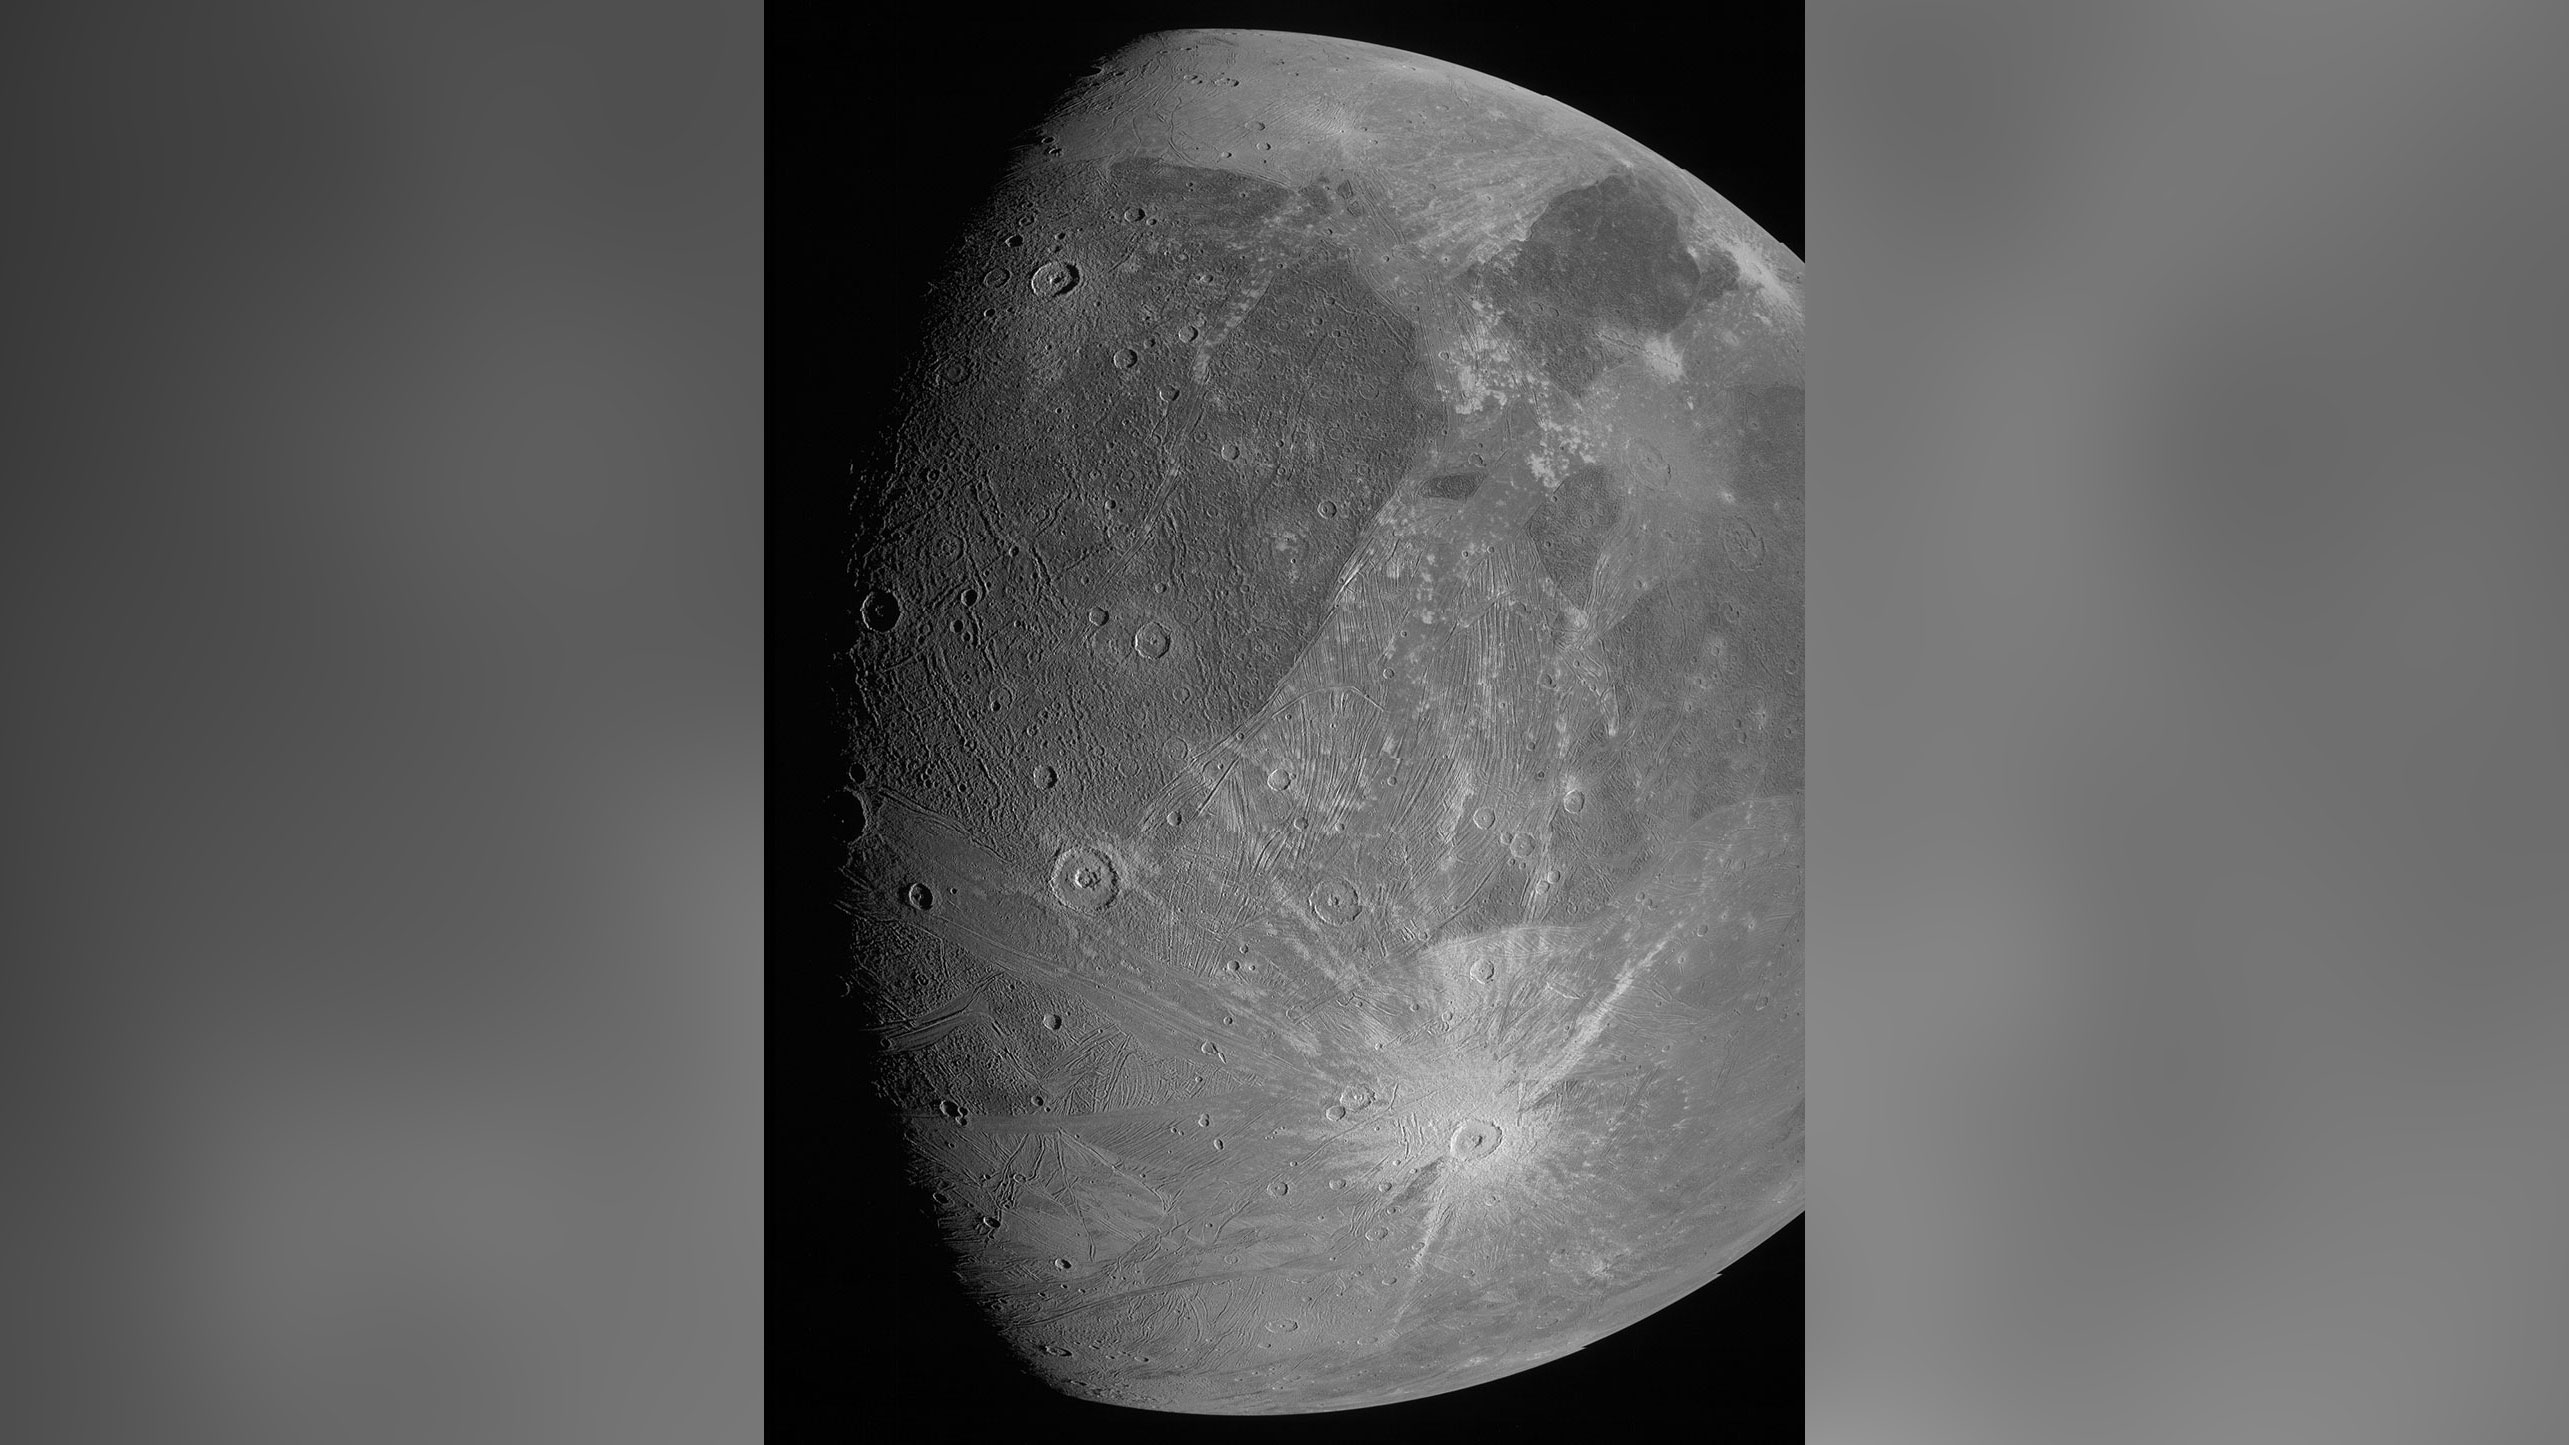 NASA's Juno mission captures first closeup images of Jupiter's largest moon in a generation